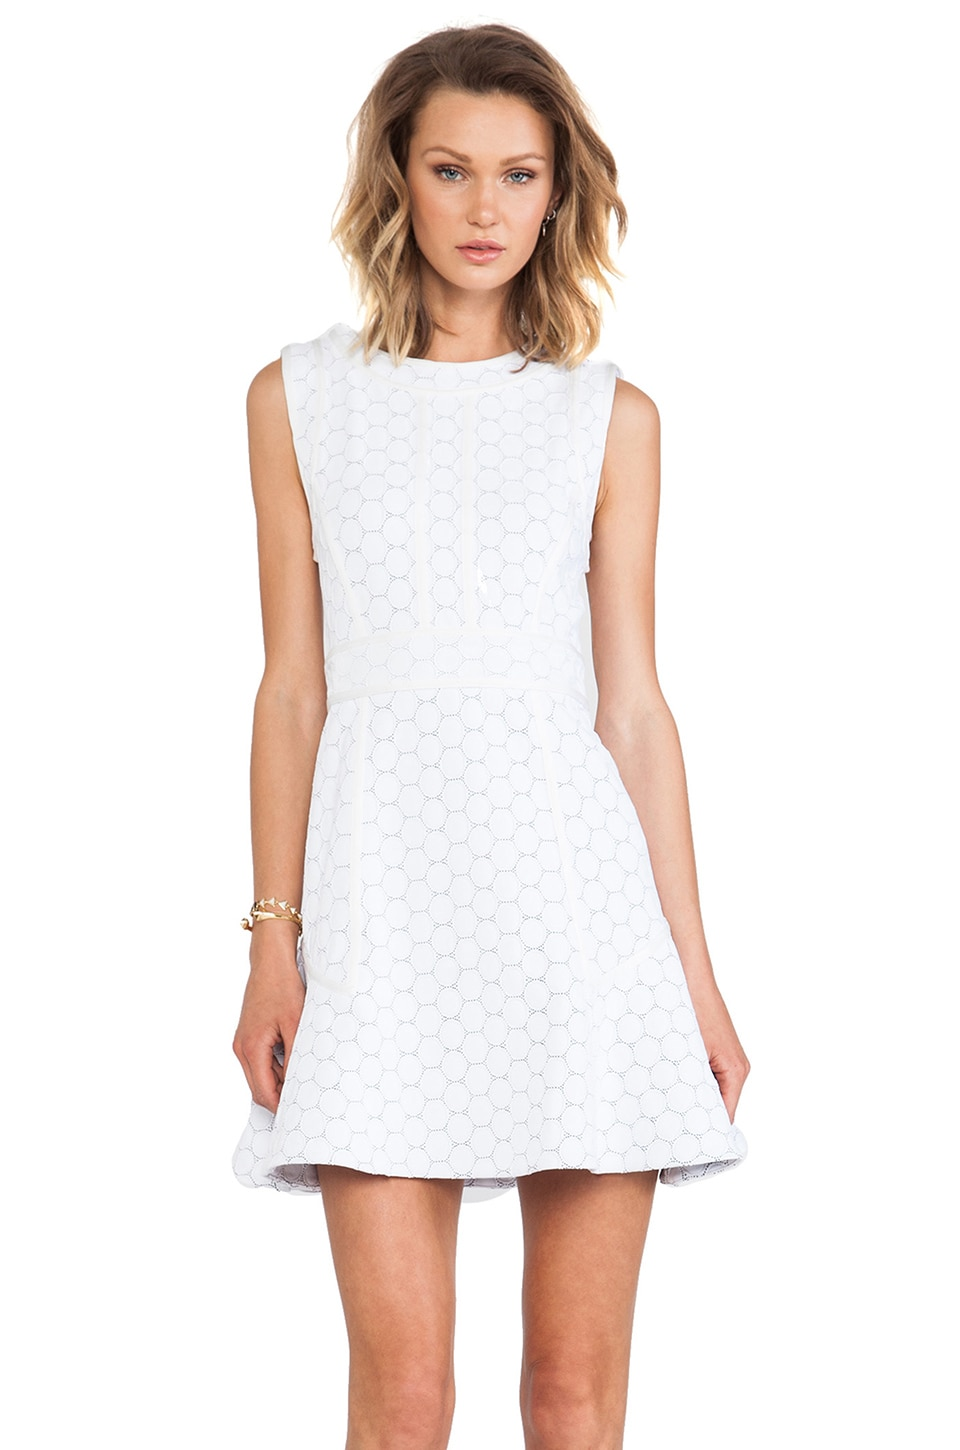 Marc by Marc Jacobs Leyna Dotty Ponte Dress in White Multi